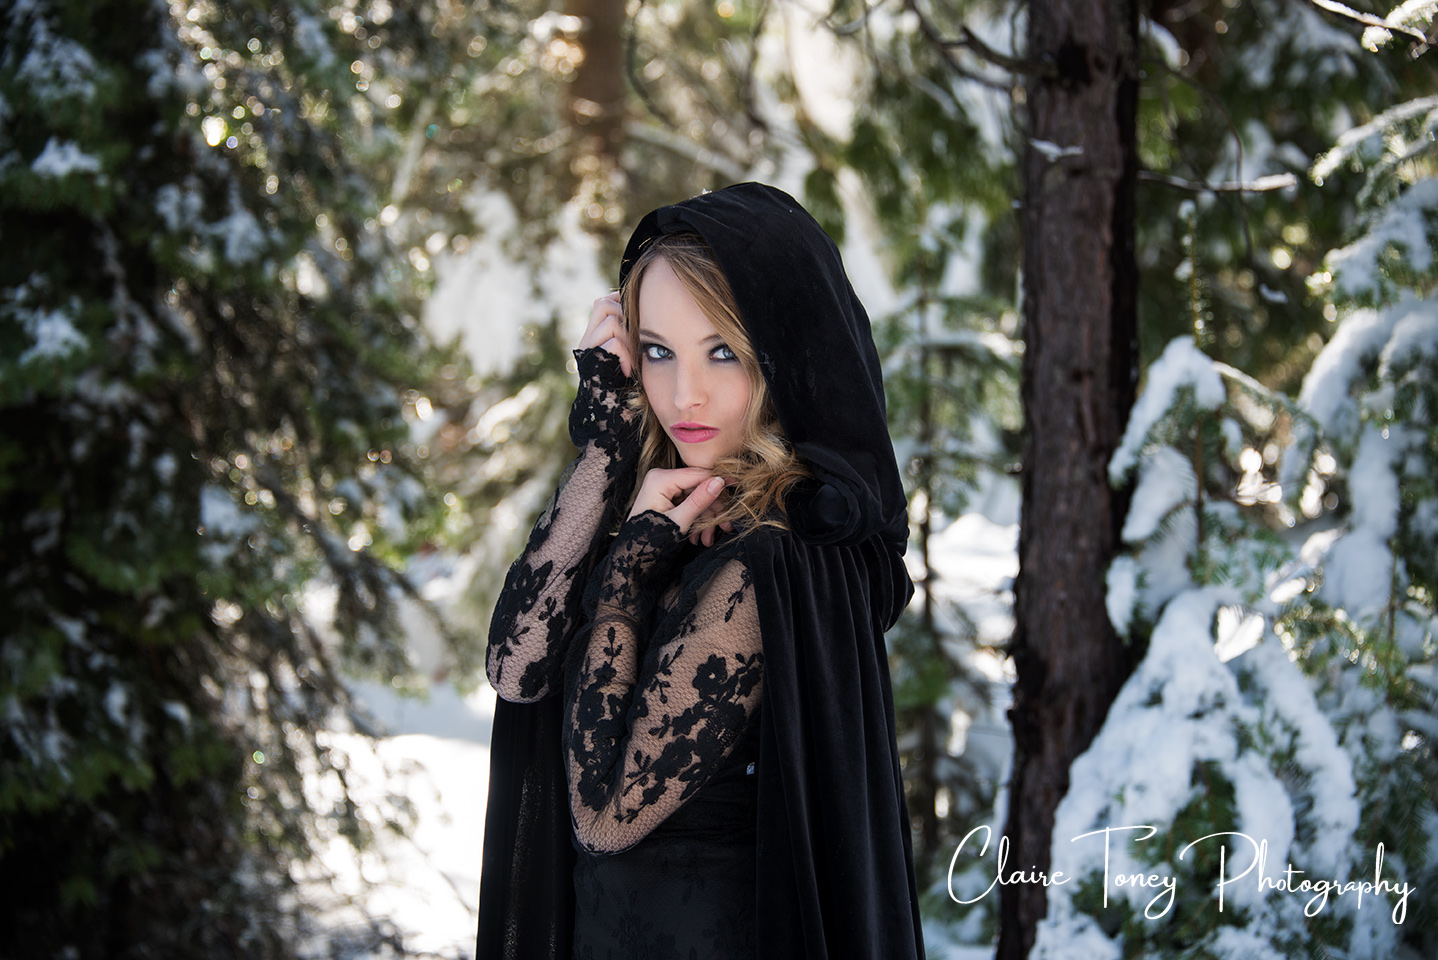 Young woman wearing a black cape and a lacy sleeved dress standing in a snowy forest and looking at the camera